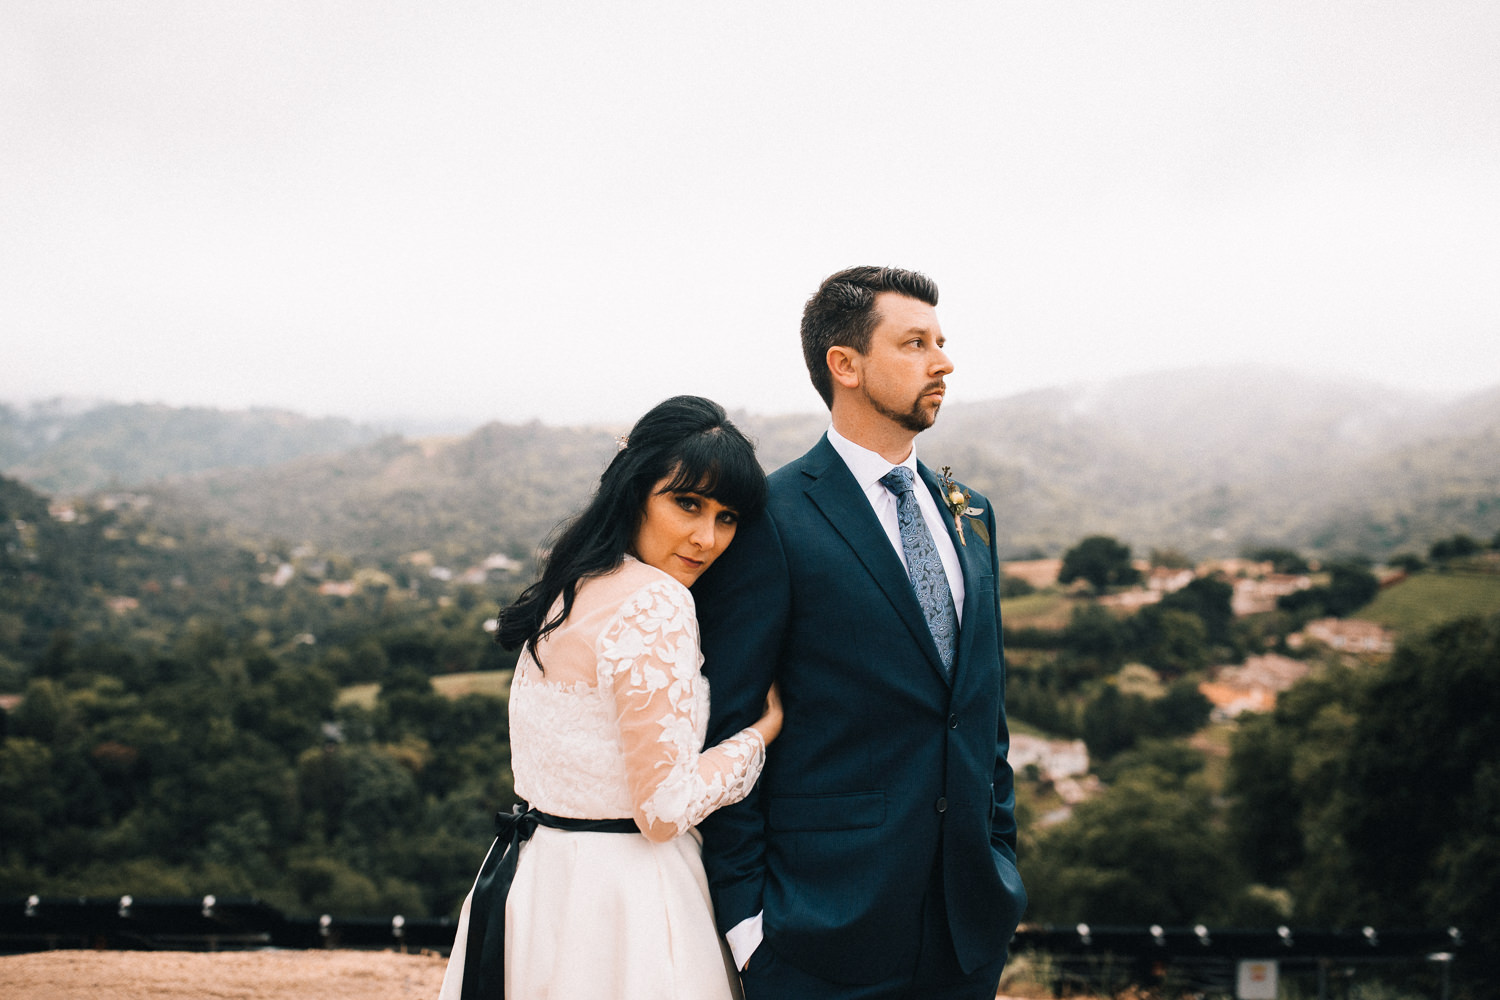 2019_05_ 182019.05.19 Lisa + Eddie South Bay Wedding Blog Photos Edited For Web 0106.jpg